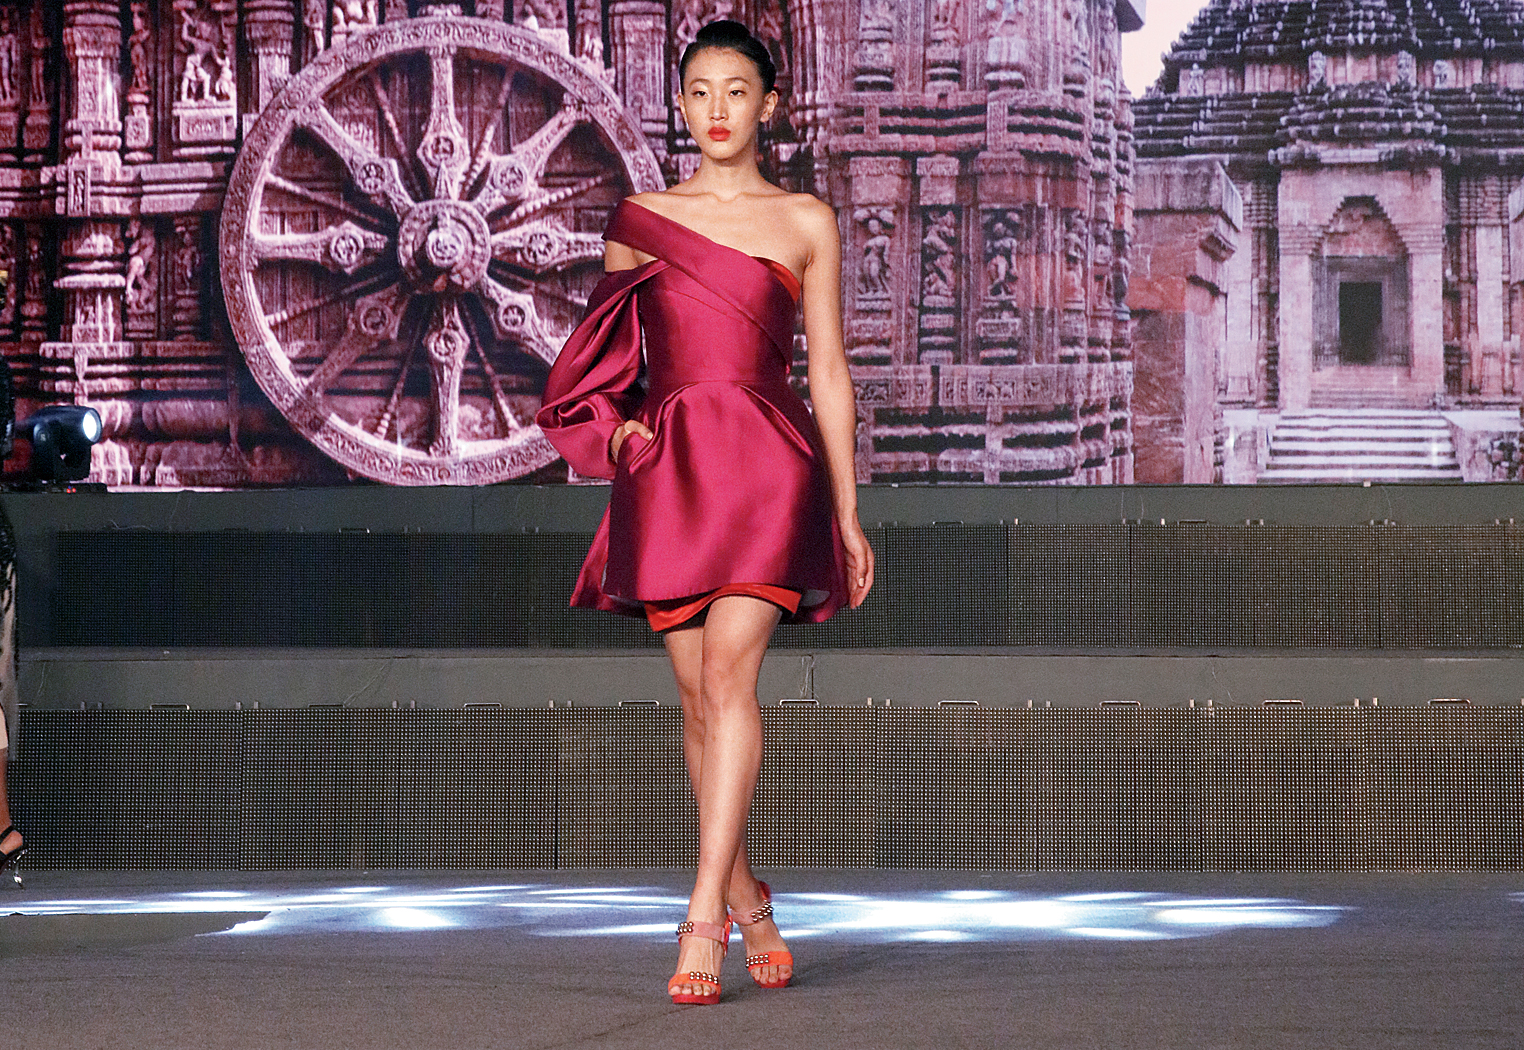 Bibhu Mohapatra showcased his fall-winter 2018 collection at the Make in Odisha Conclave 2018 in Bhubaneswar on November 13. Inspired by Charles Dickens's Great Expectations, the line comprises his signature evening dresses